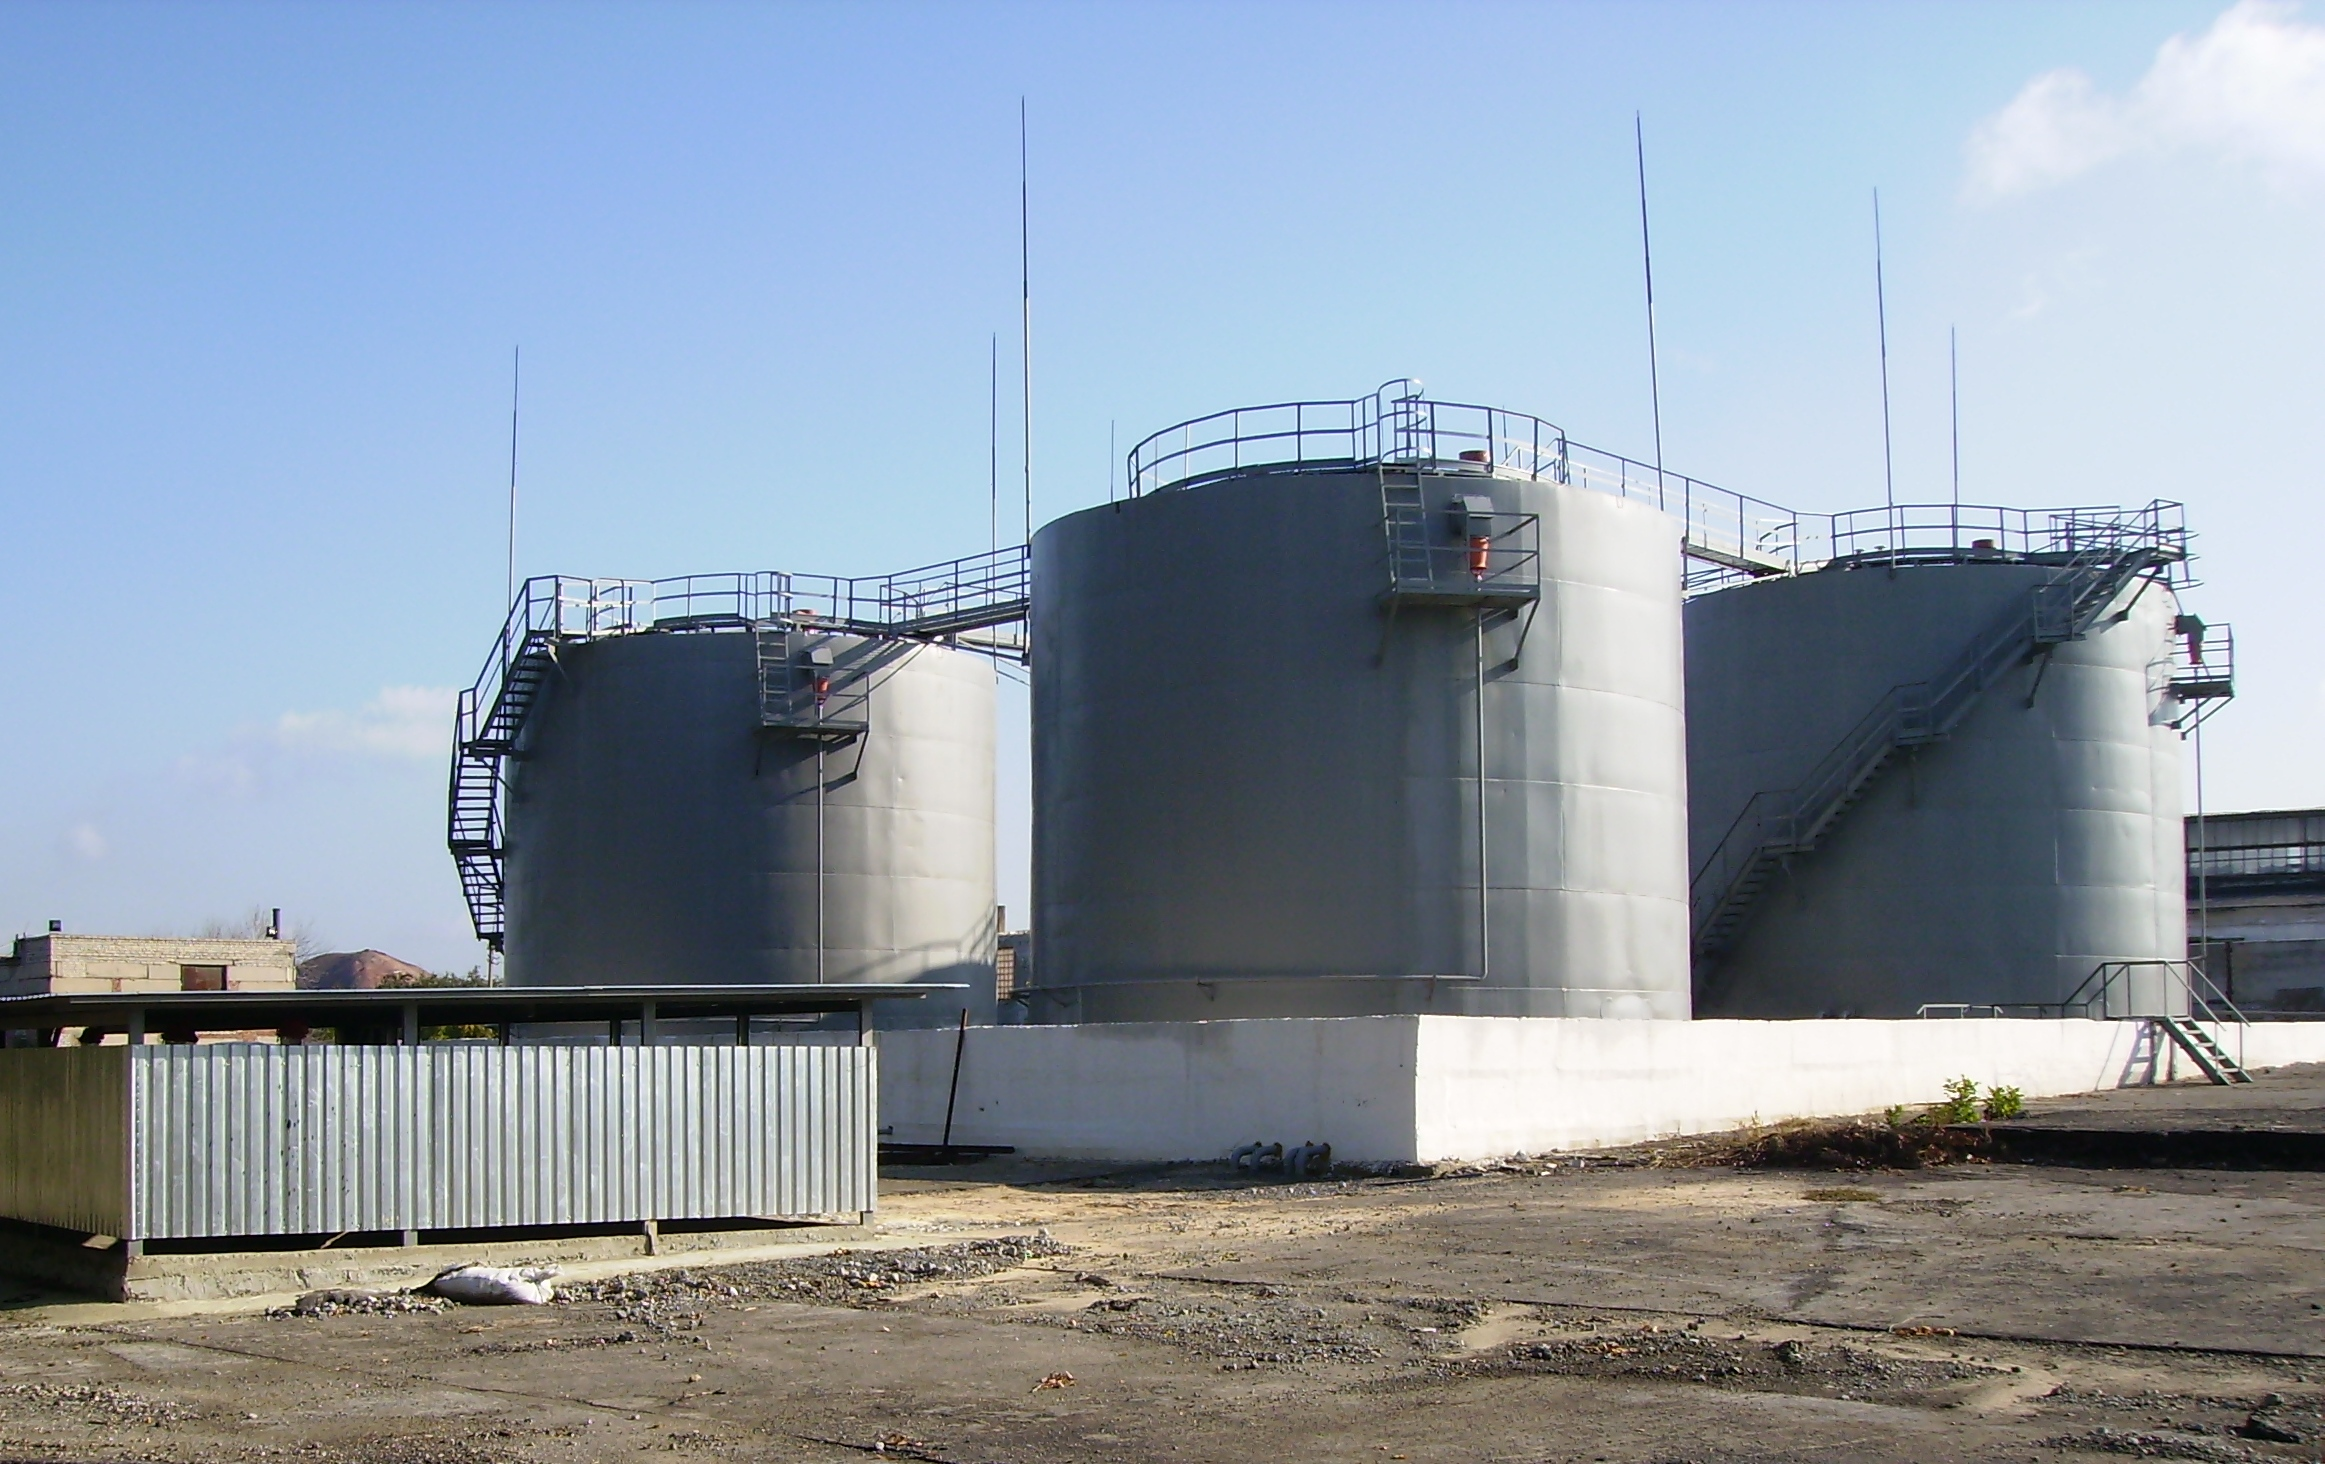 5 Tank farms for storage and distribution of oil products